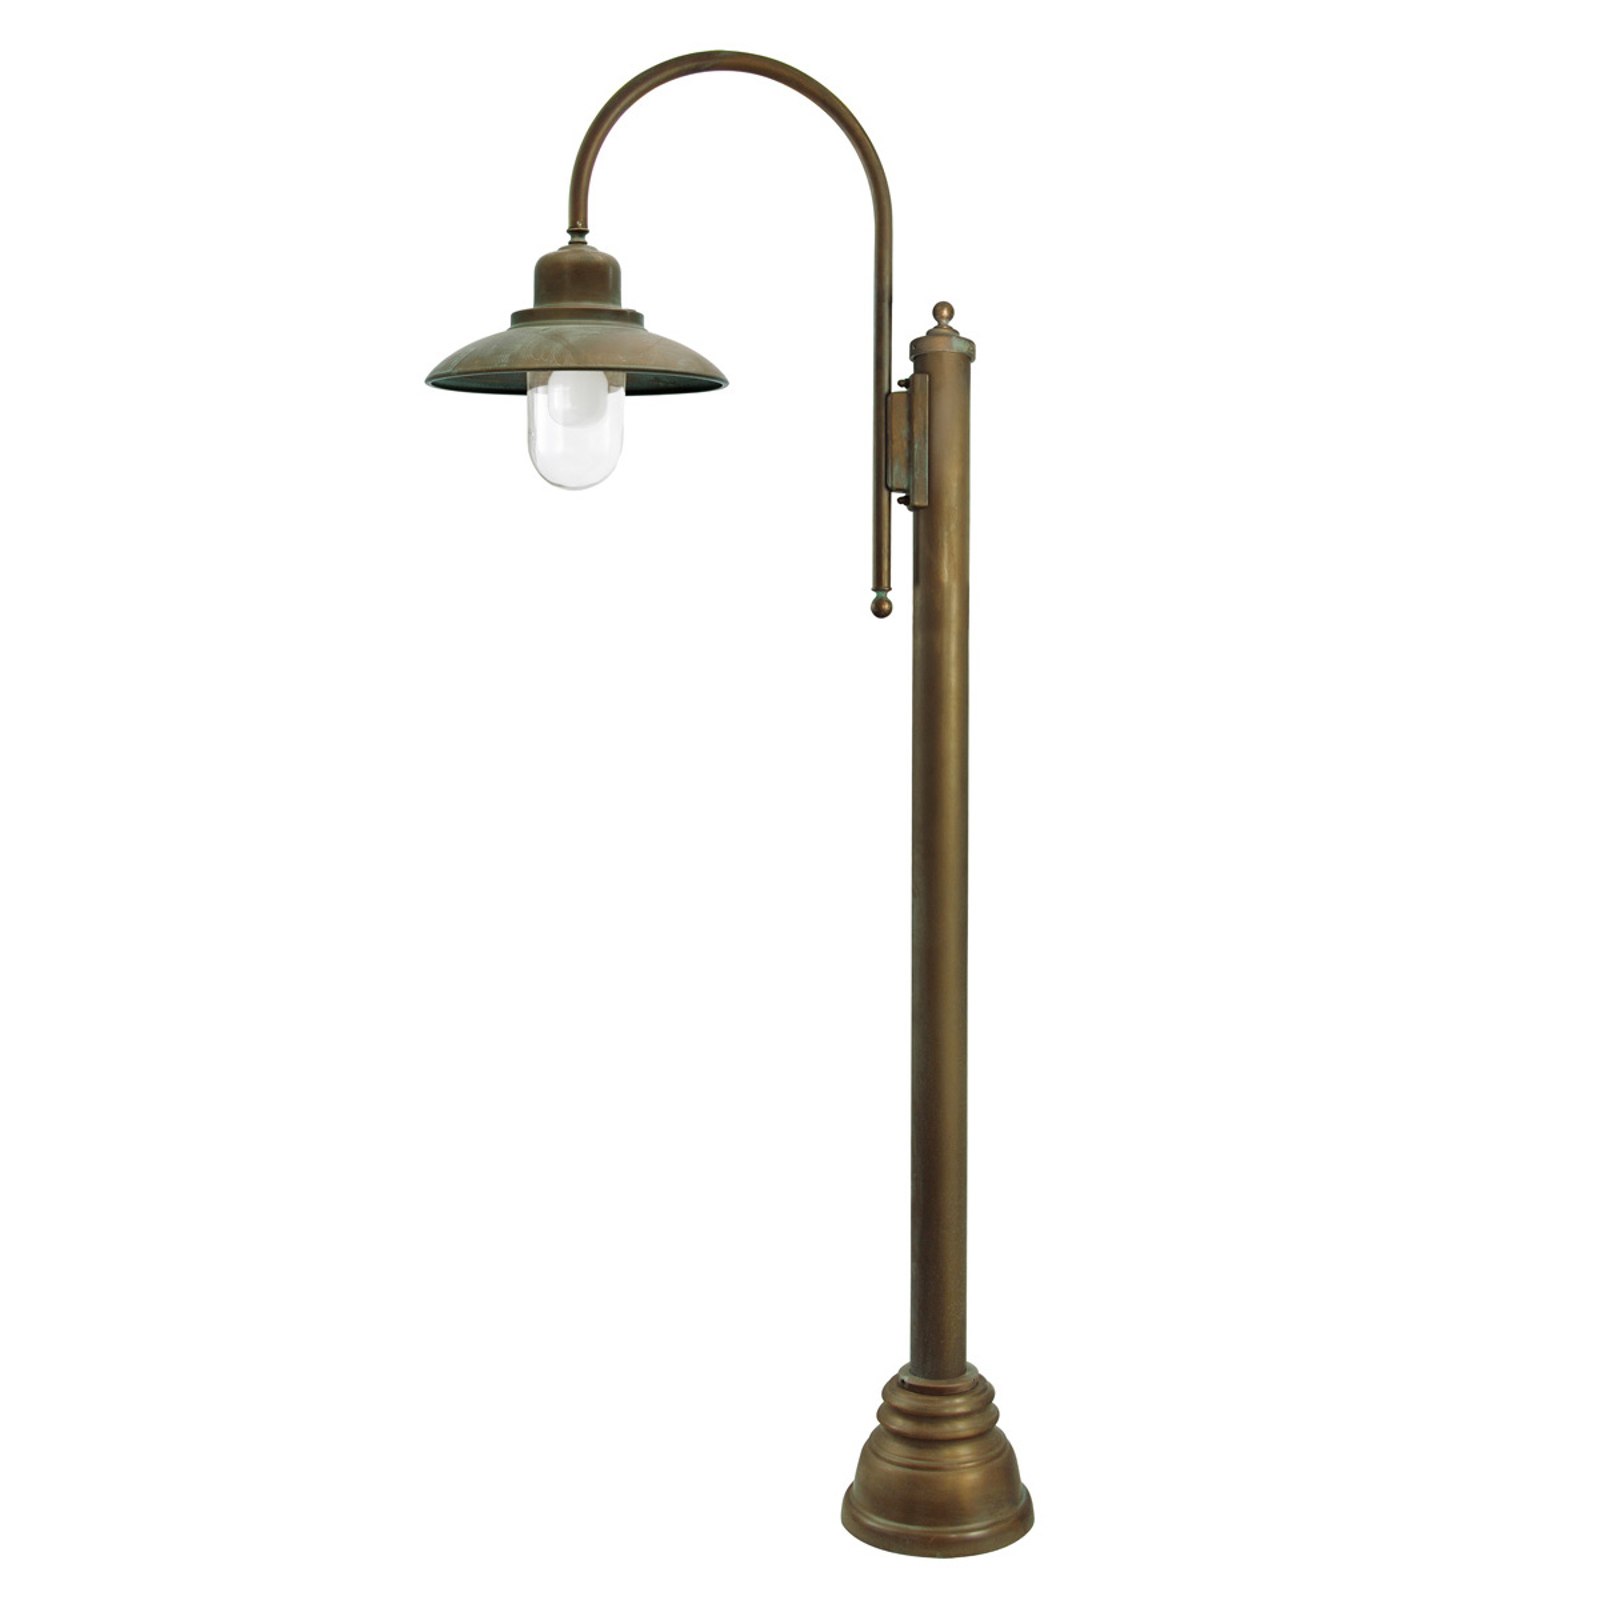 Casale - grote charmante padverlichting 155 cm